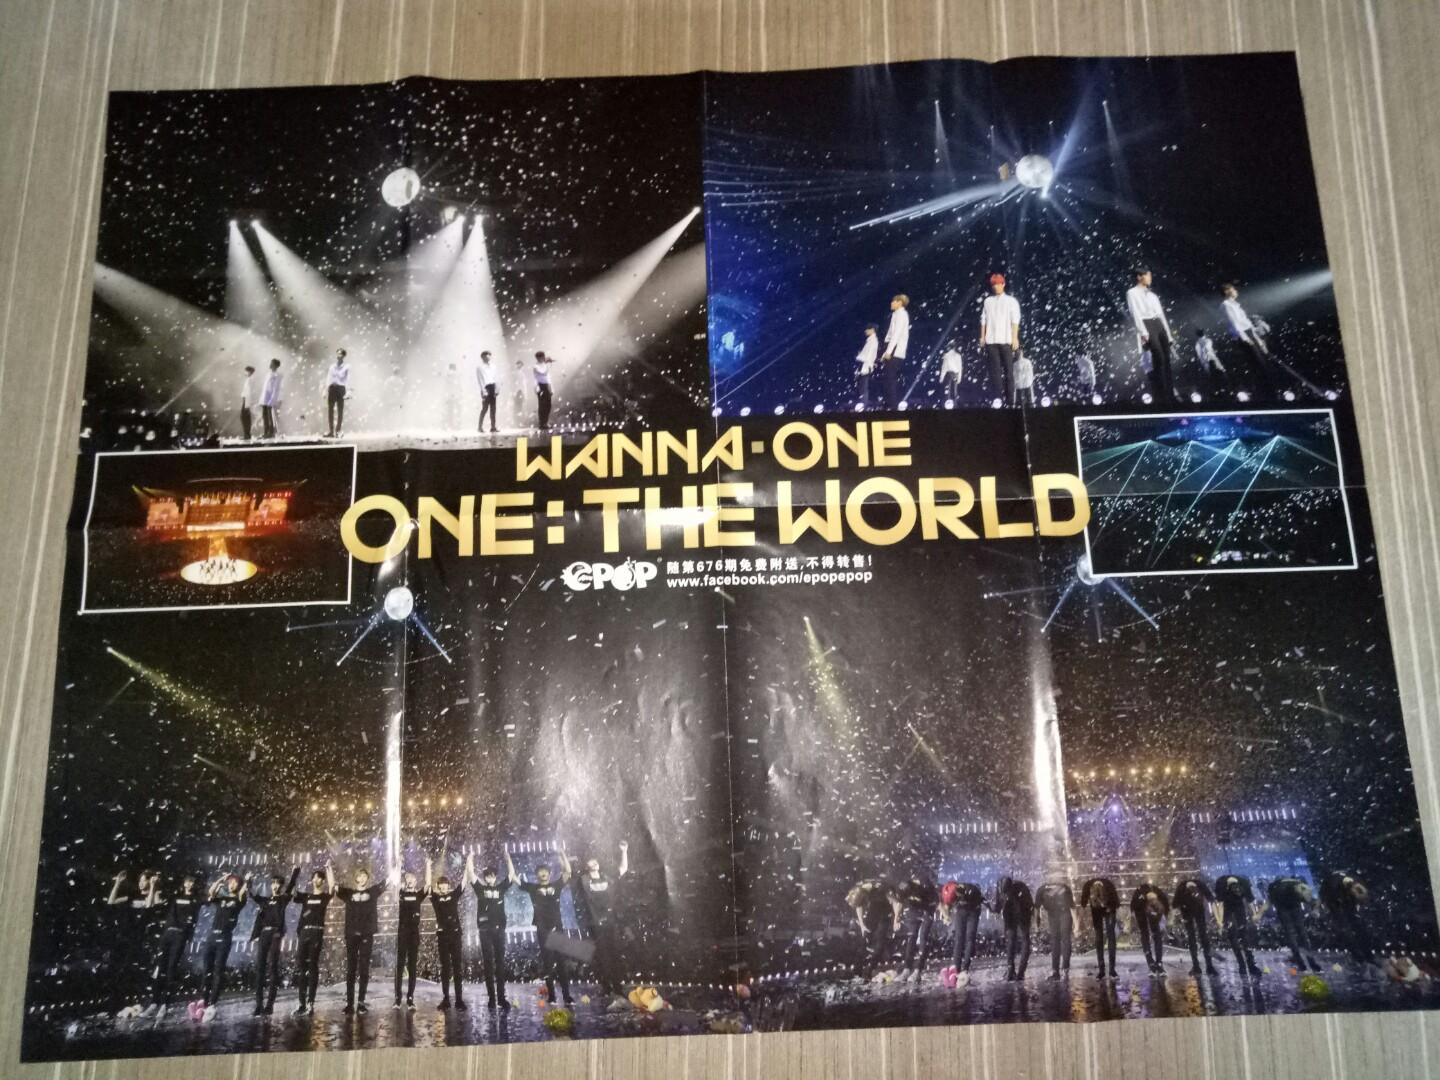 WANNA ONE <ONE: THE WORLD> / NINEPERCENT 陈立农 double page poster